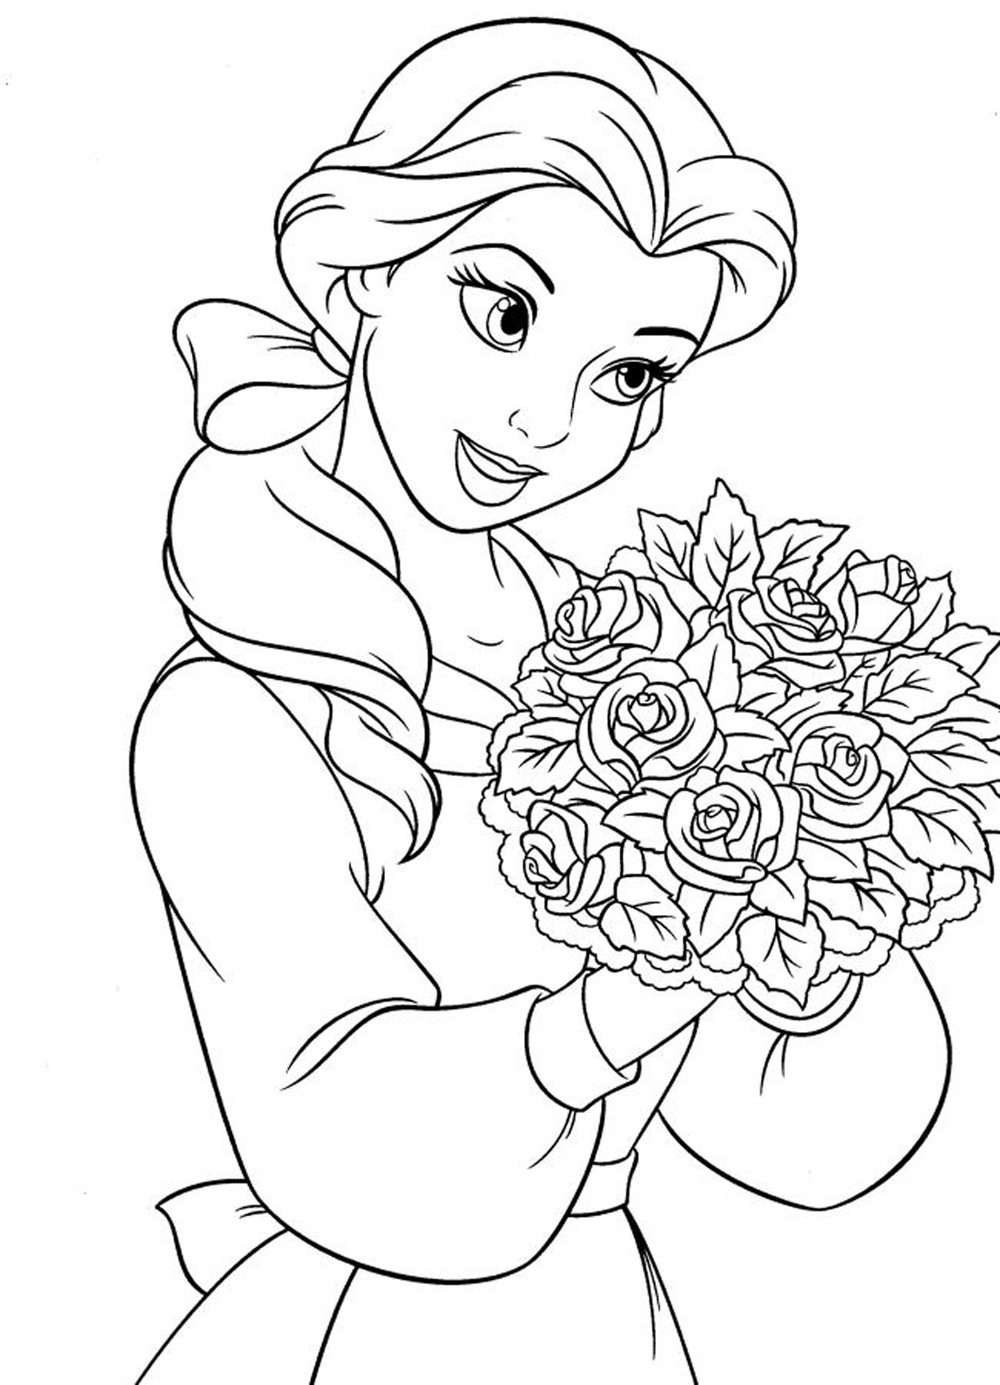 free printable disney princess coloring pages for kids - Coloring Pages Princess Printable